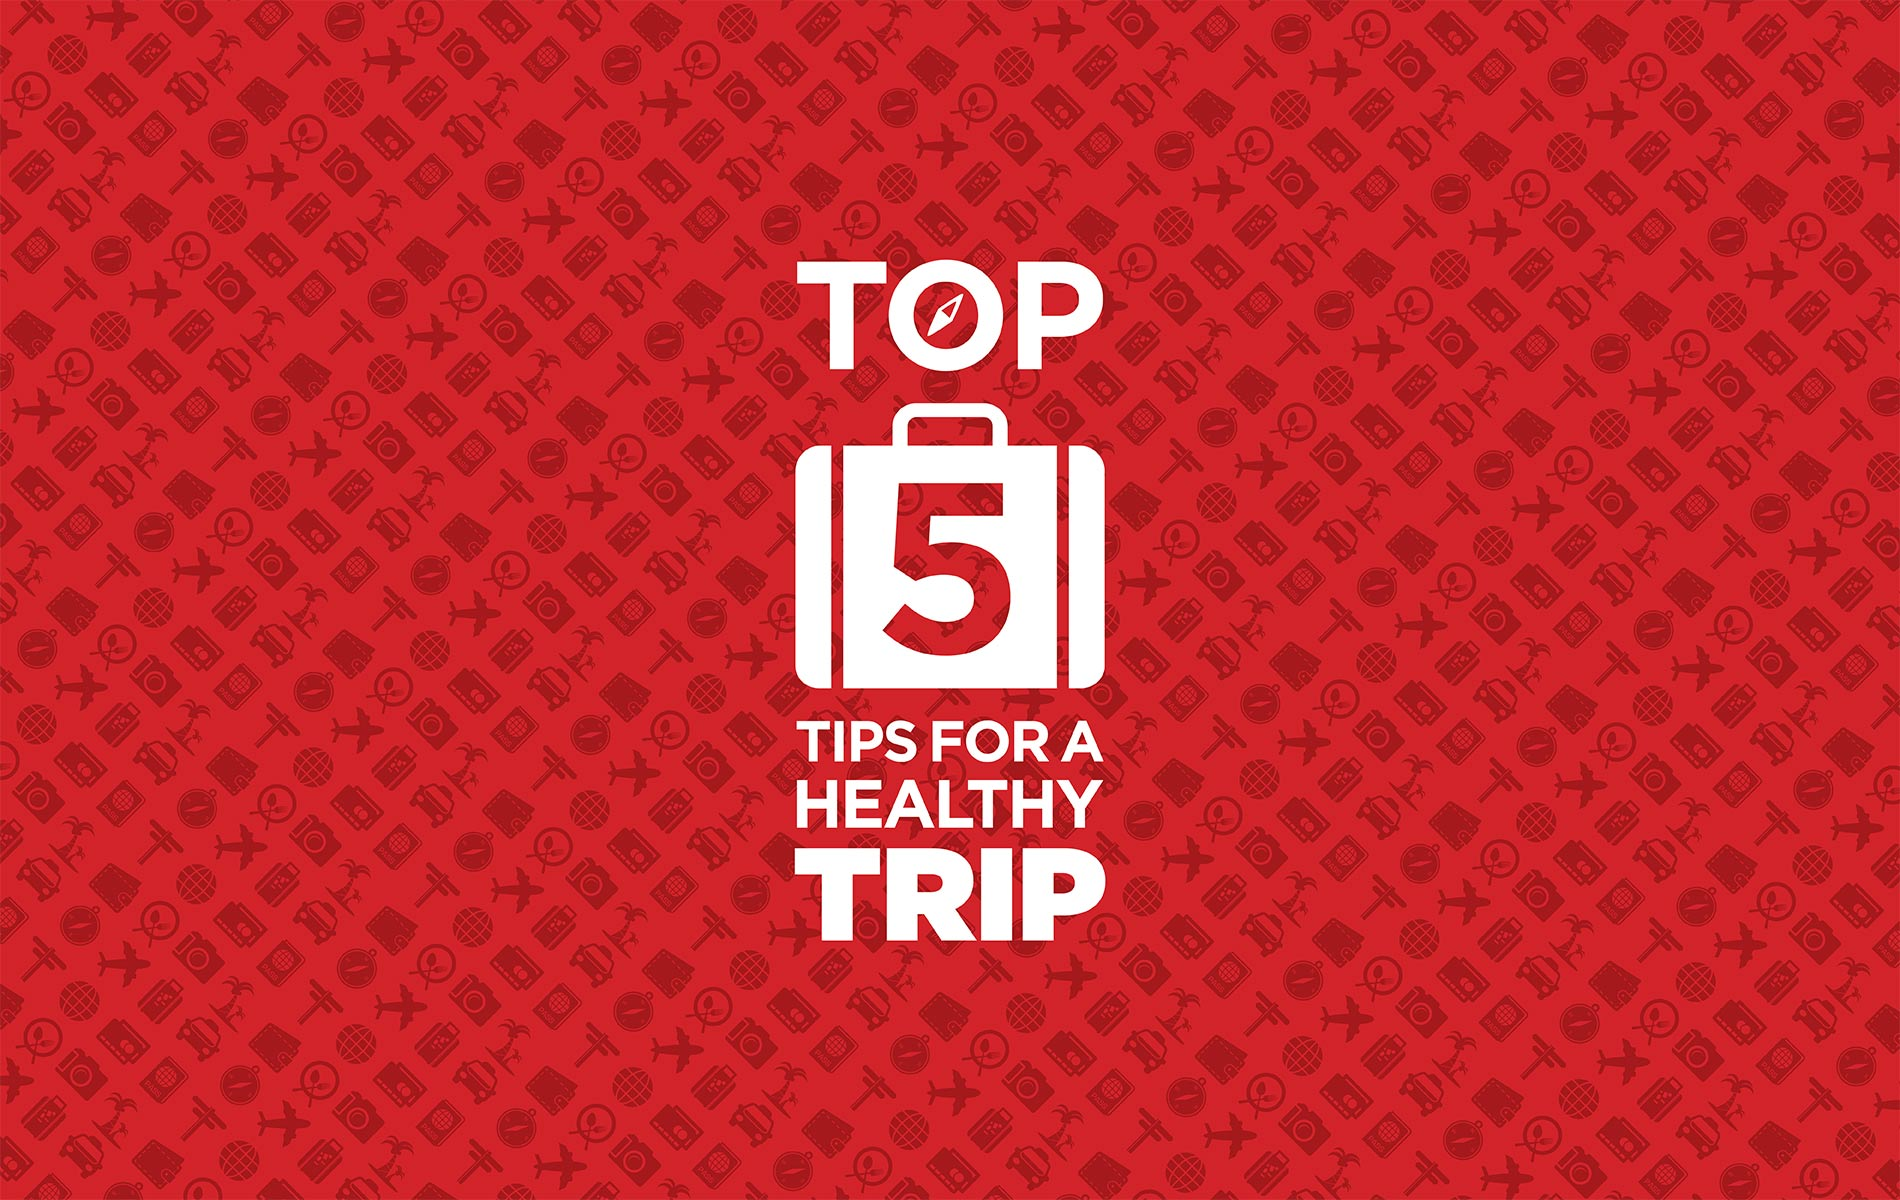 Top five tips for a healthy trip